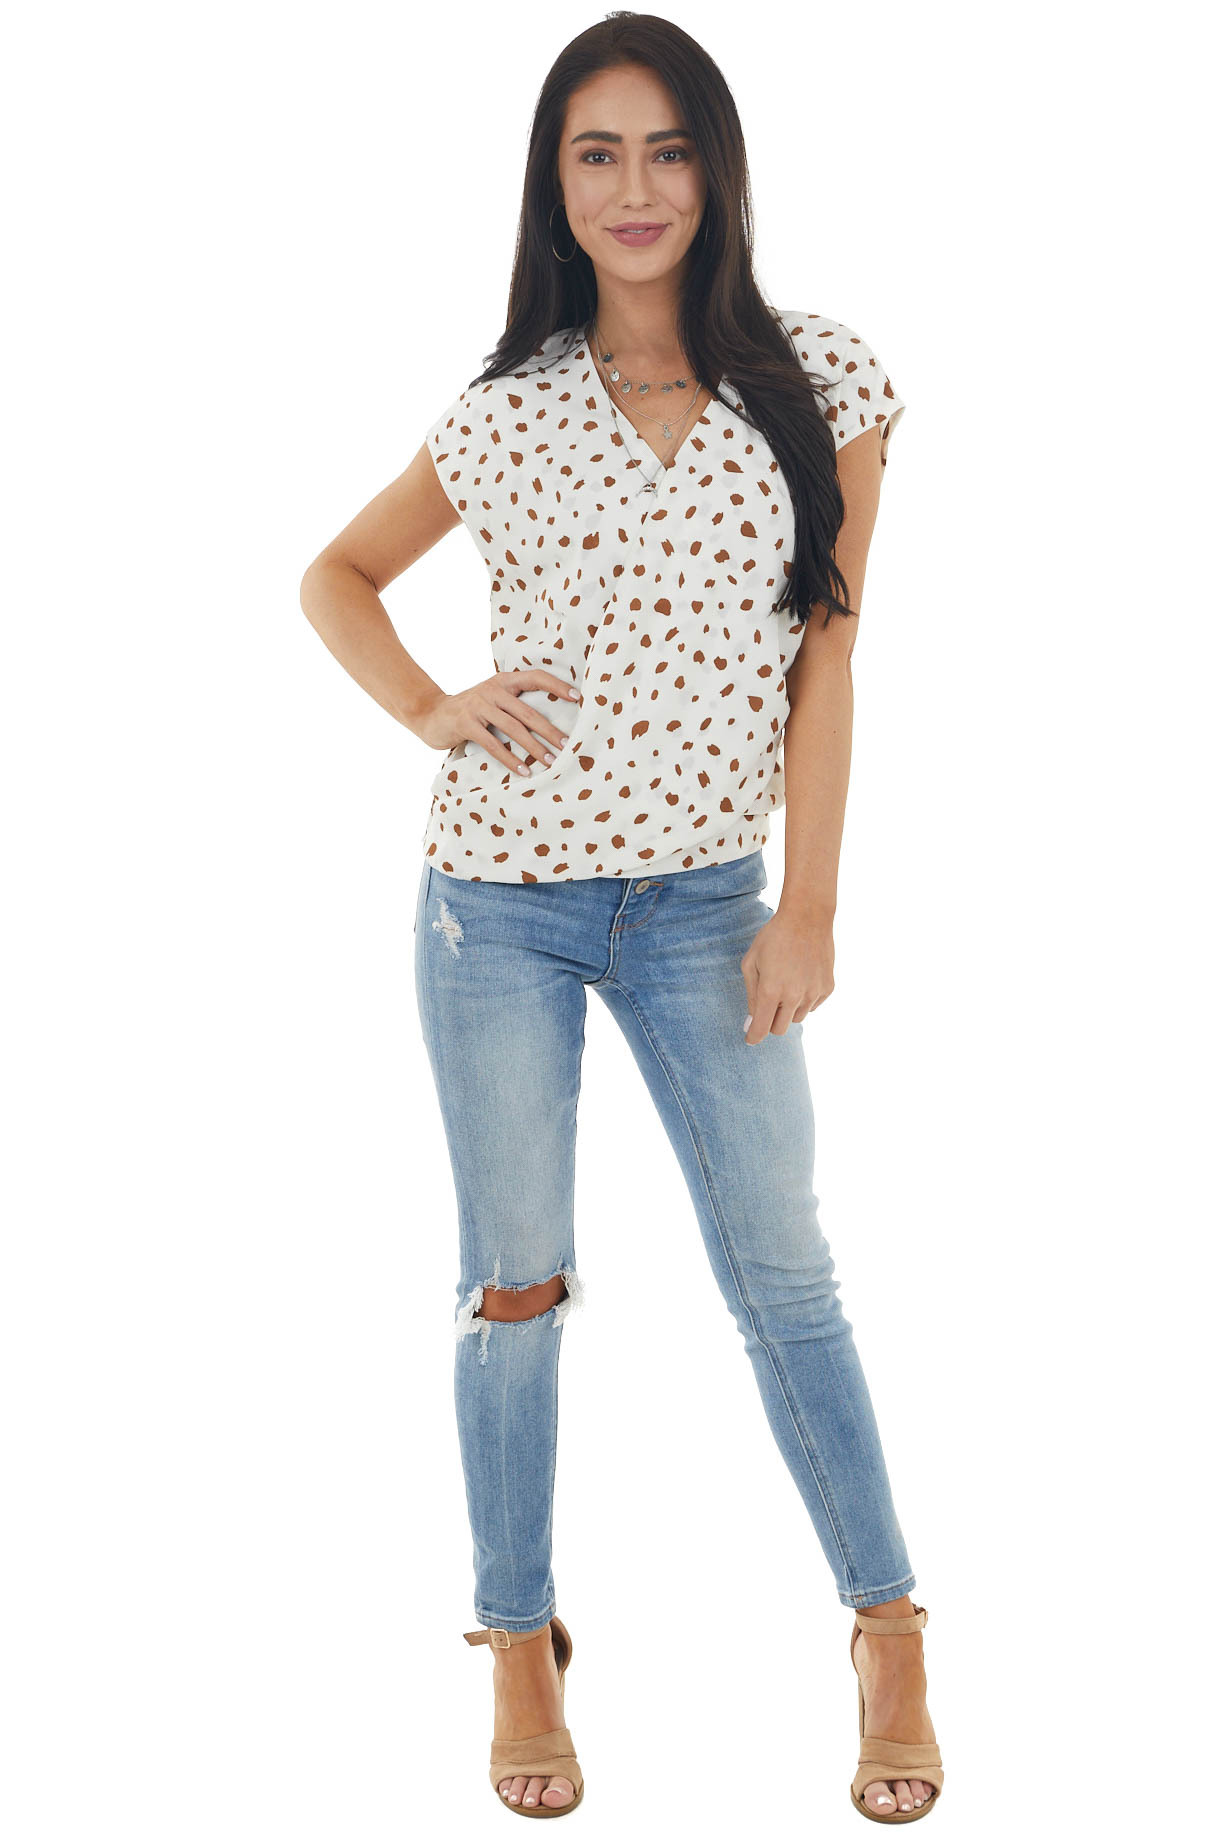 Ivory and Walnut Patterned Surplice Top with Short Sleeves